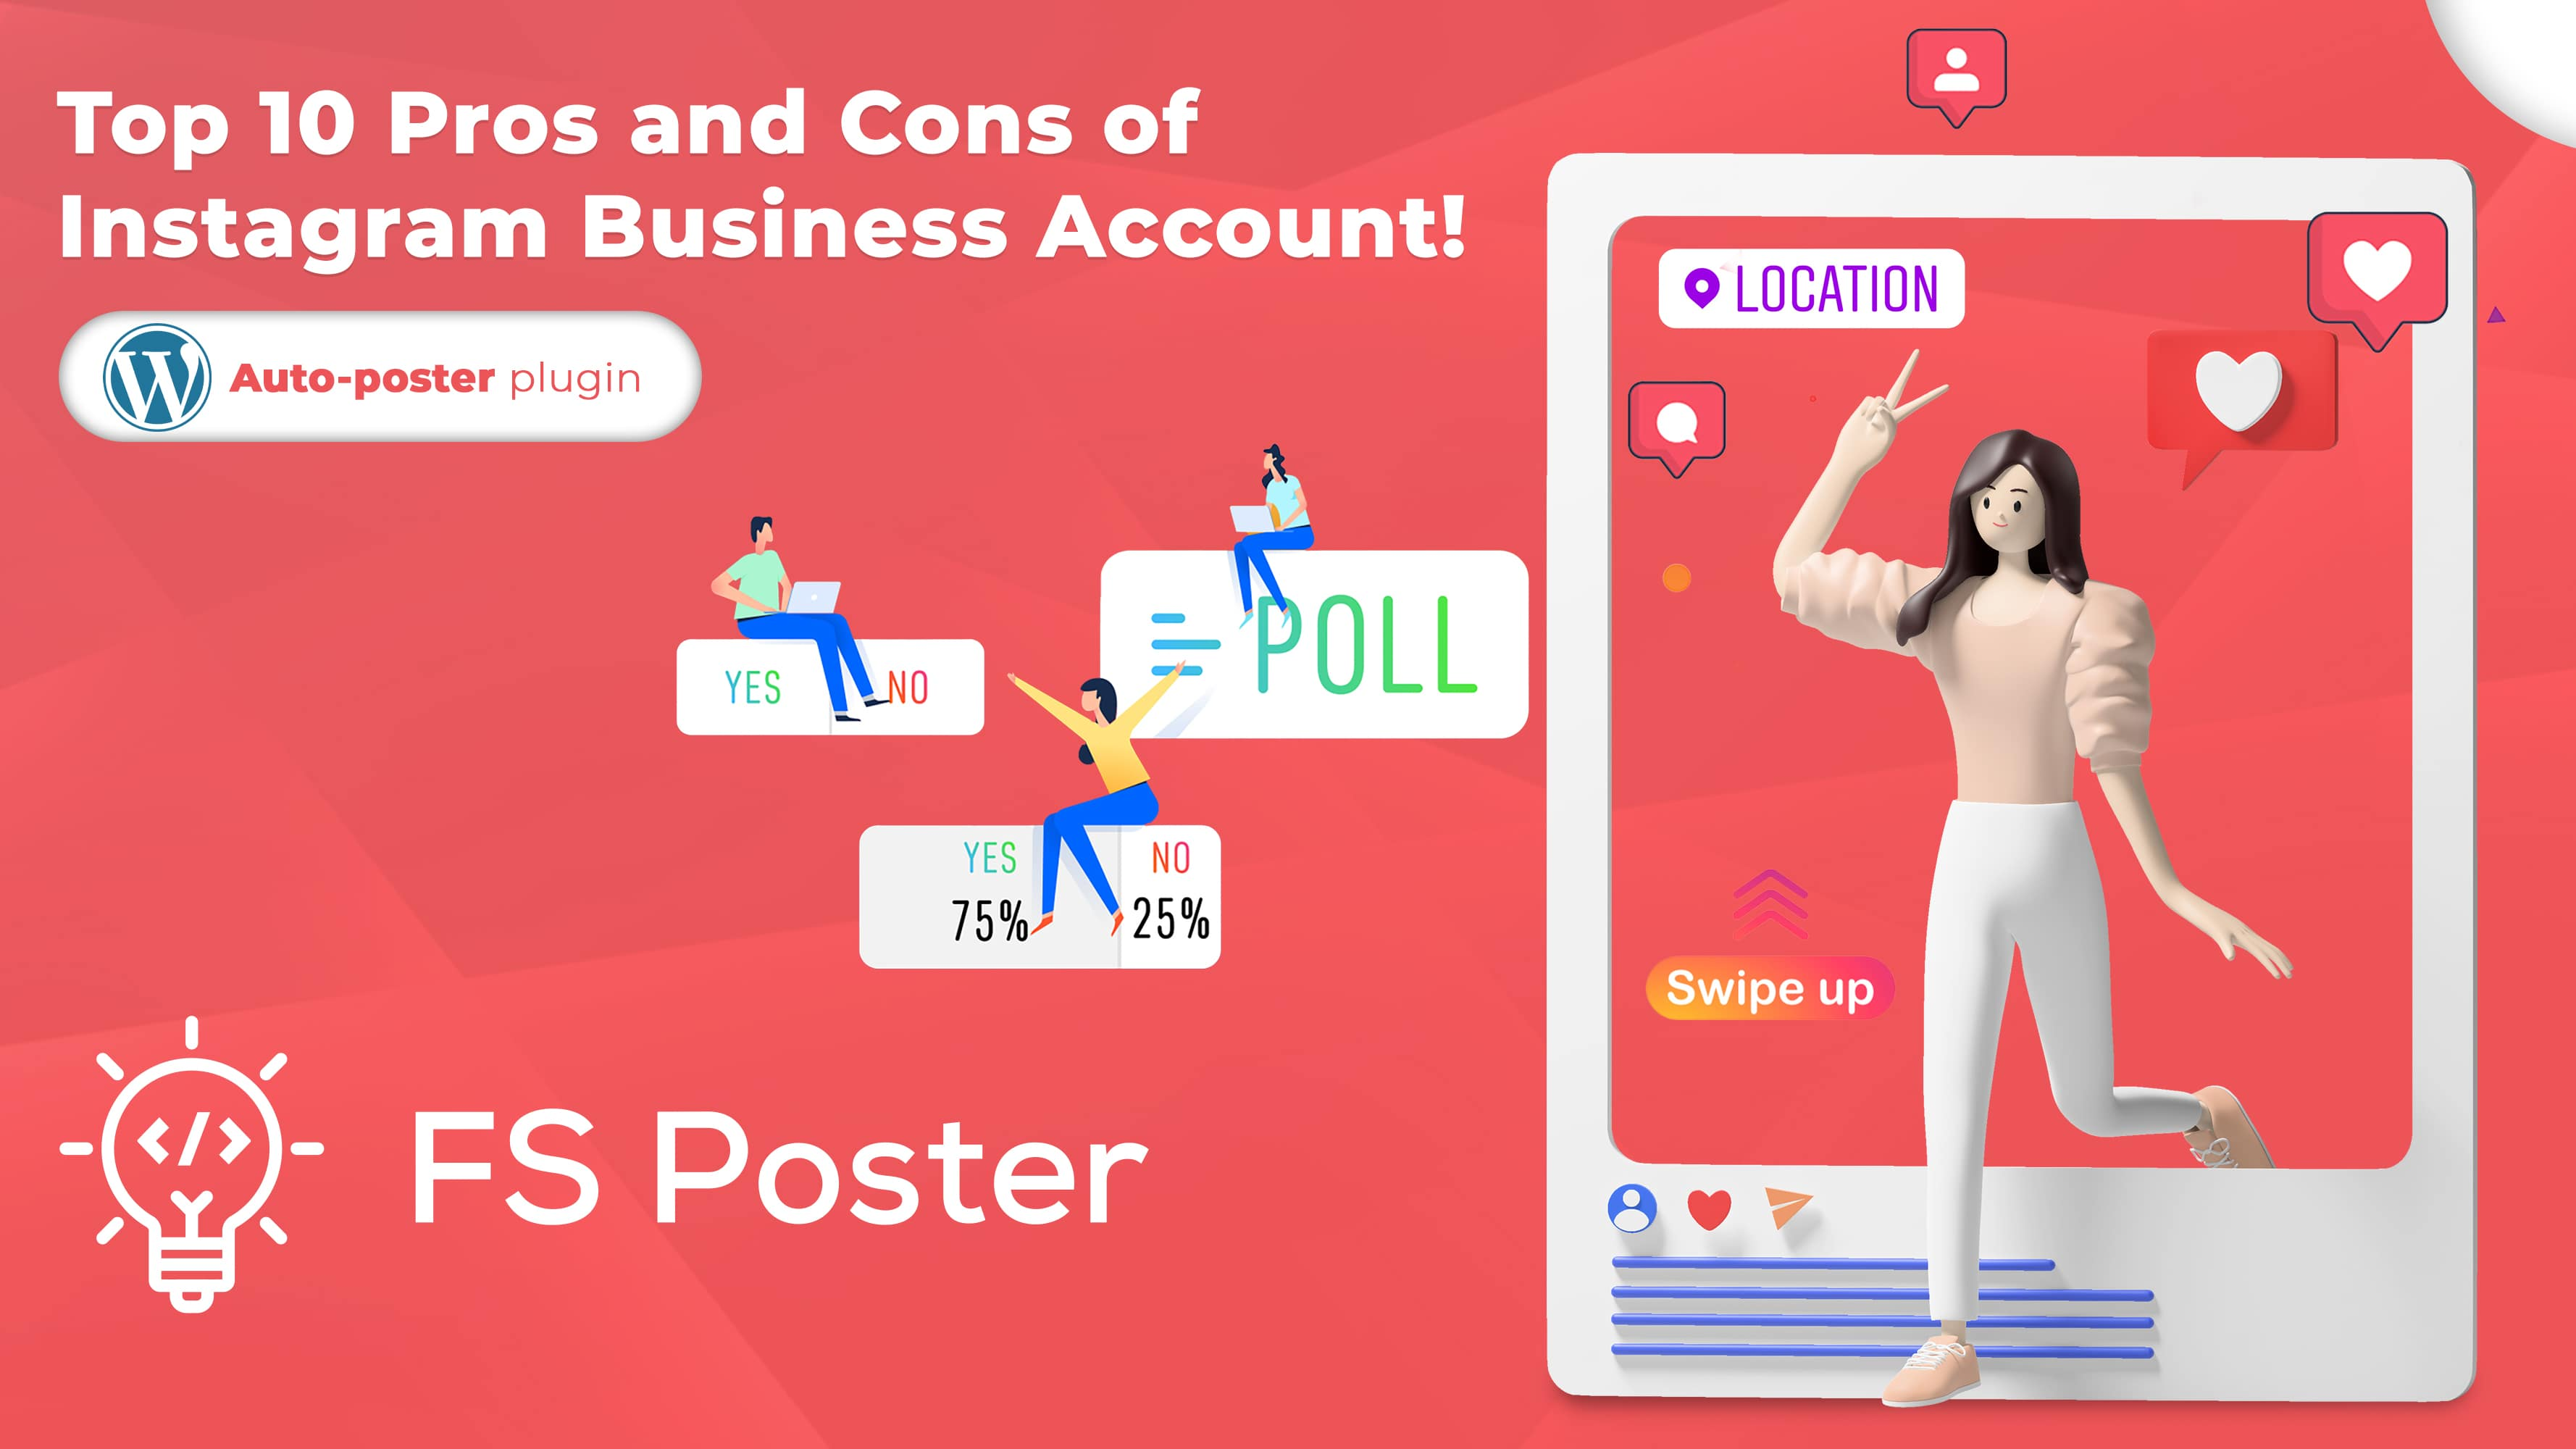 Top 10 Pros and Cons of Instagram Business Account